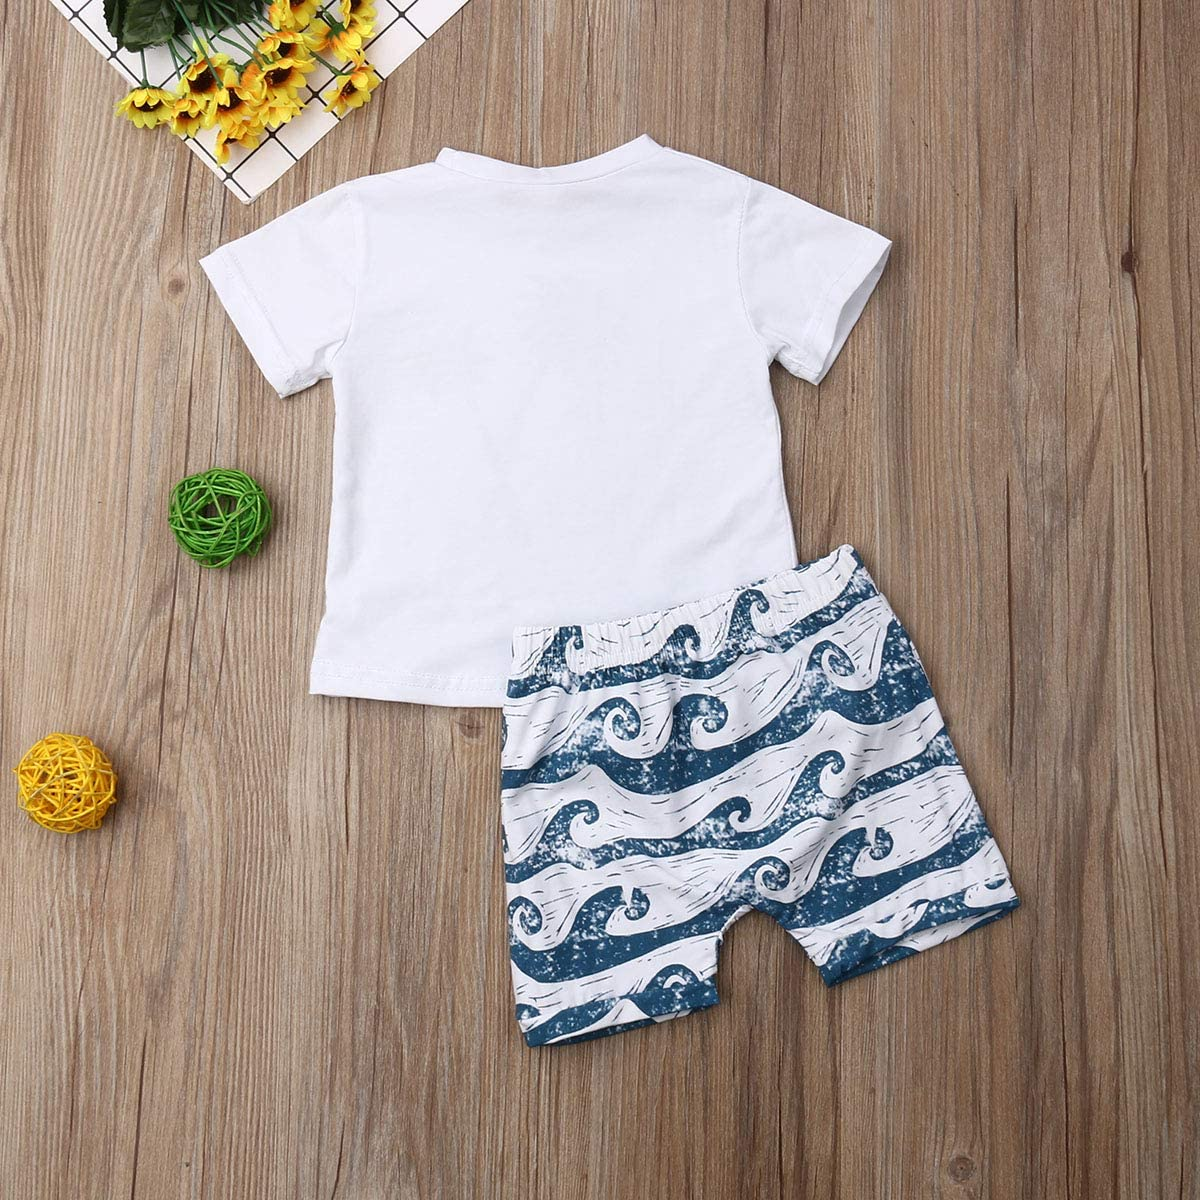 BriskyM Childrens Newborn Baby Boy Summer Costume Coco Letter Print Short Sleeve T-Shirt Top Surf Shorts Clothes Set